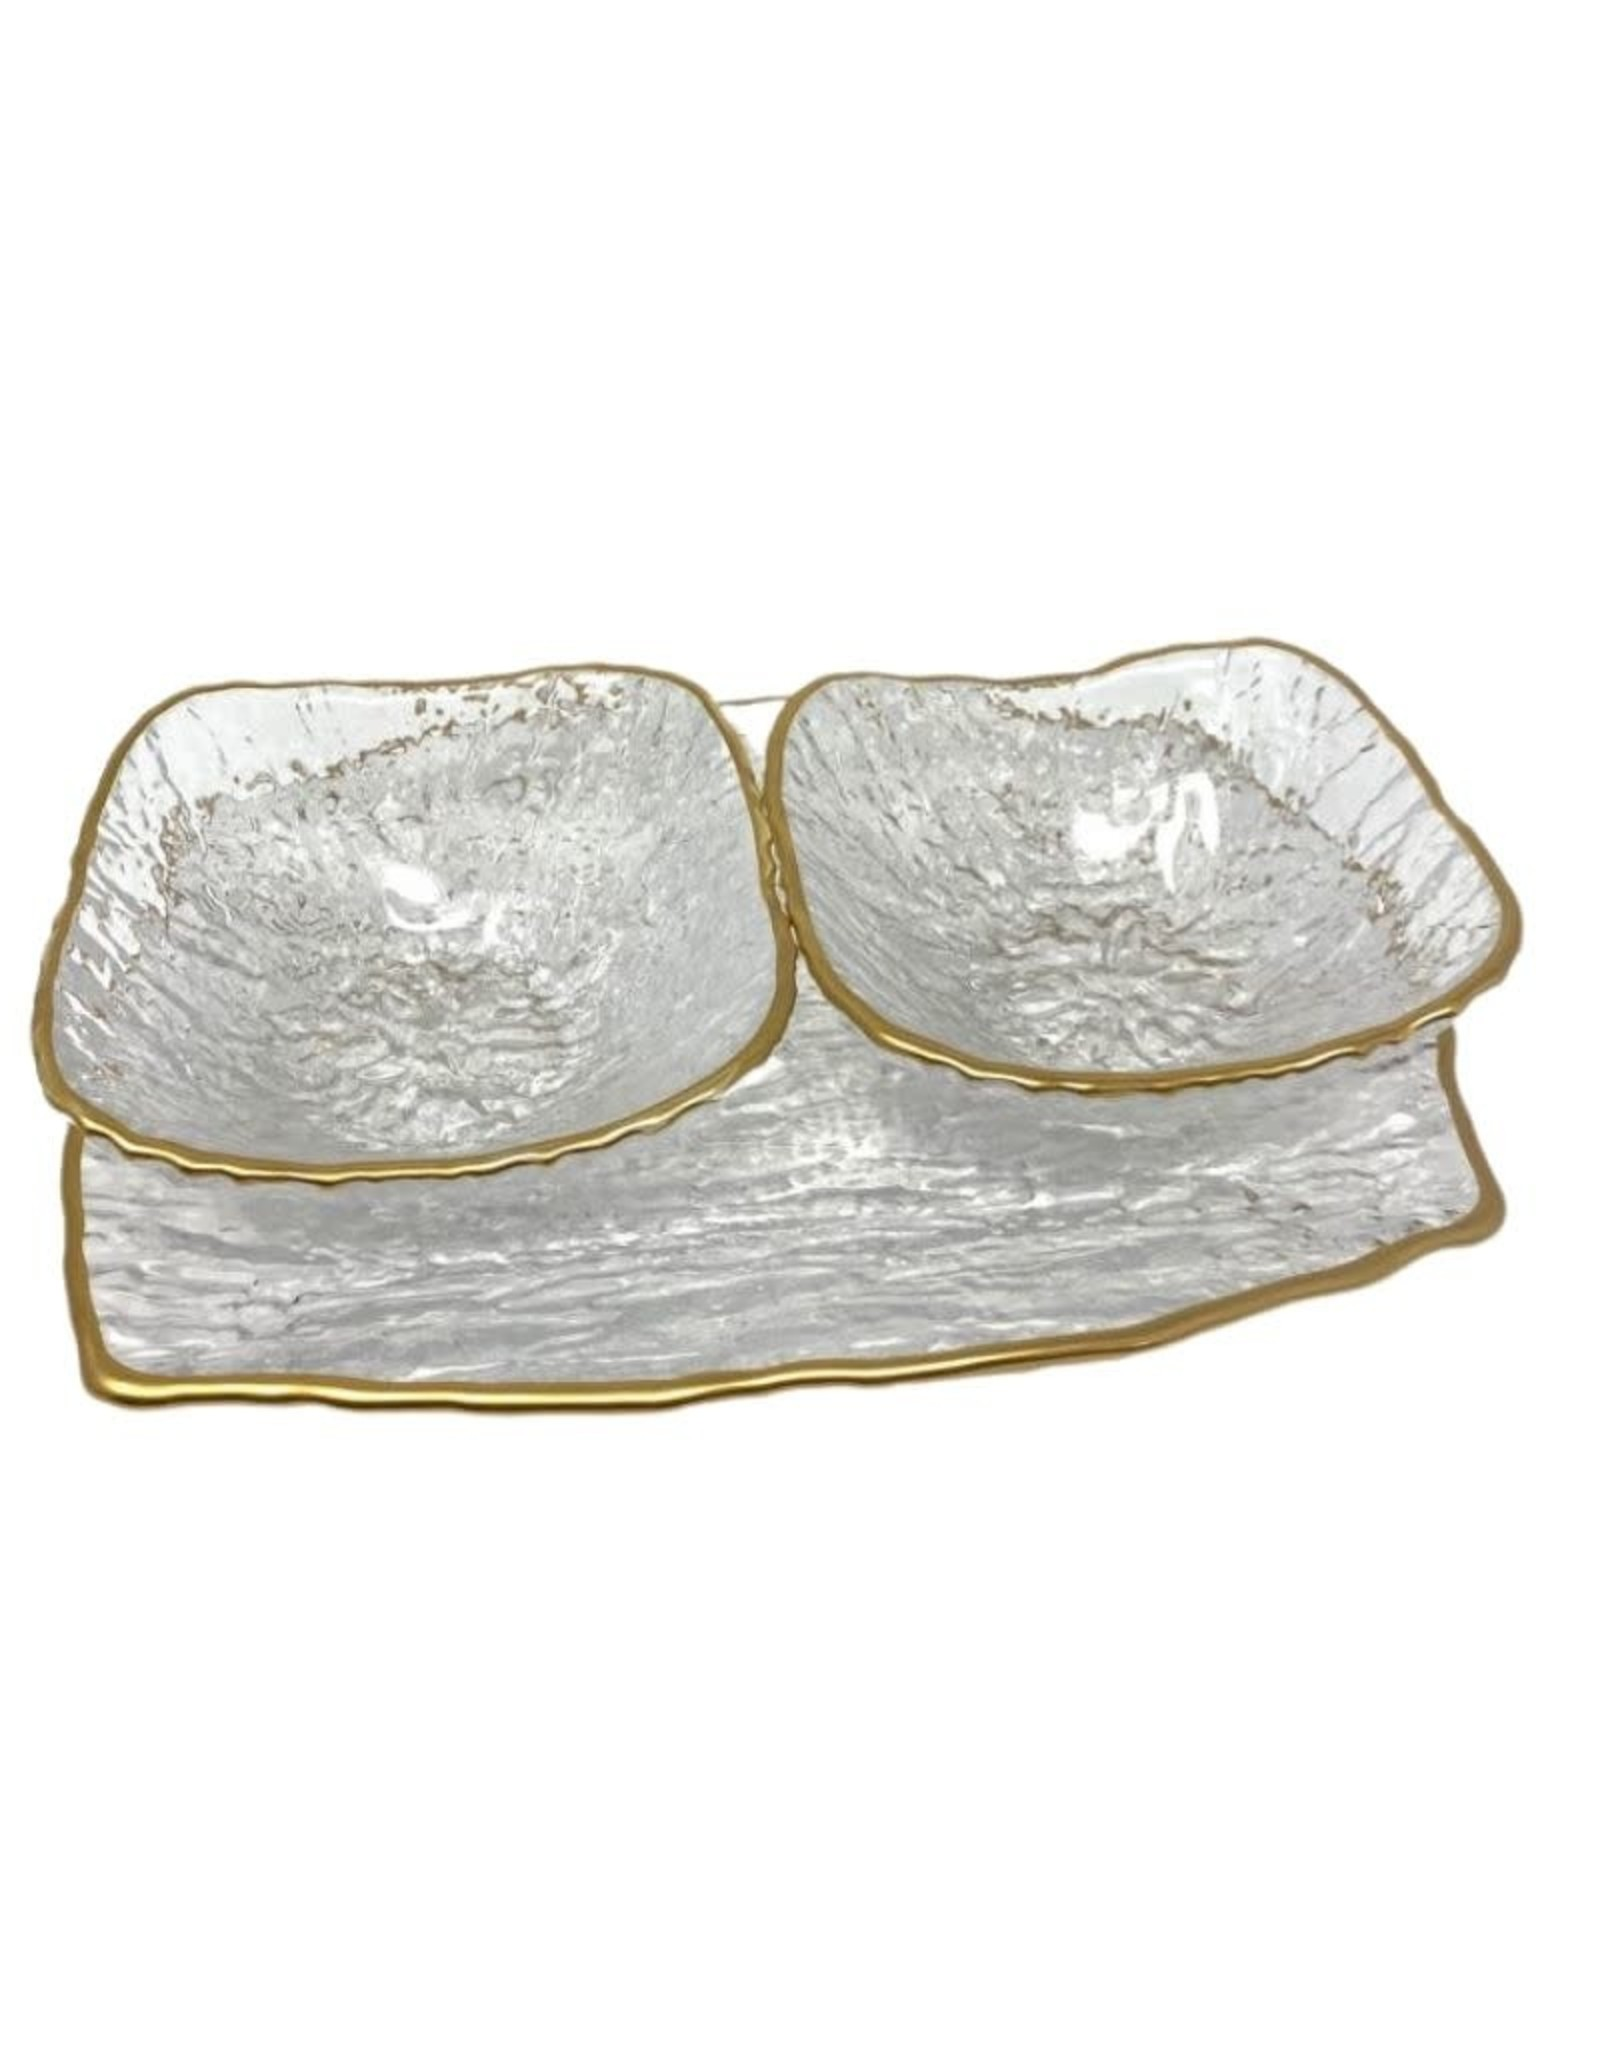 Crushed Glass 2 Bowl Relish Dish With Gold Rim